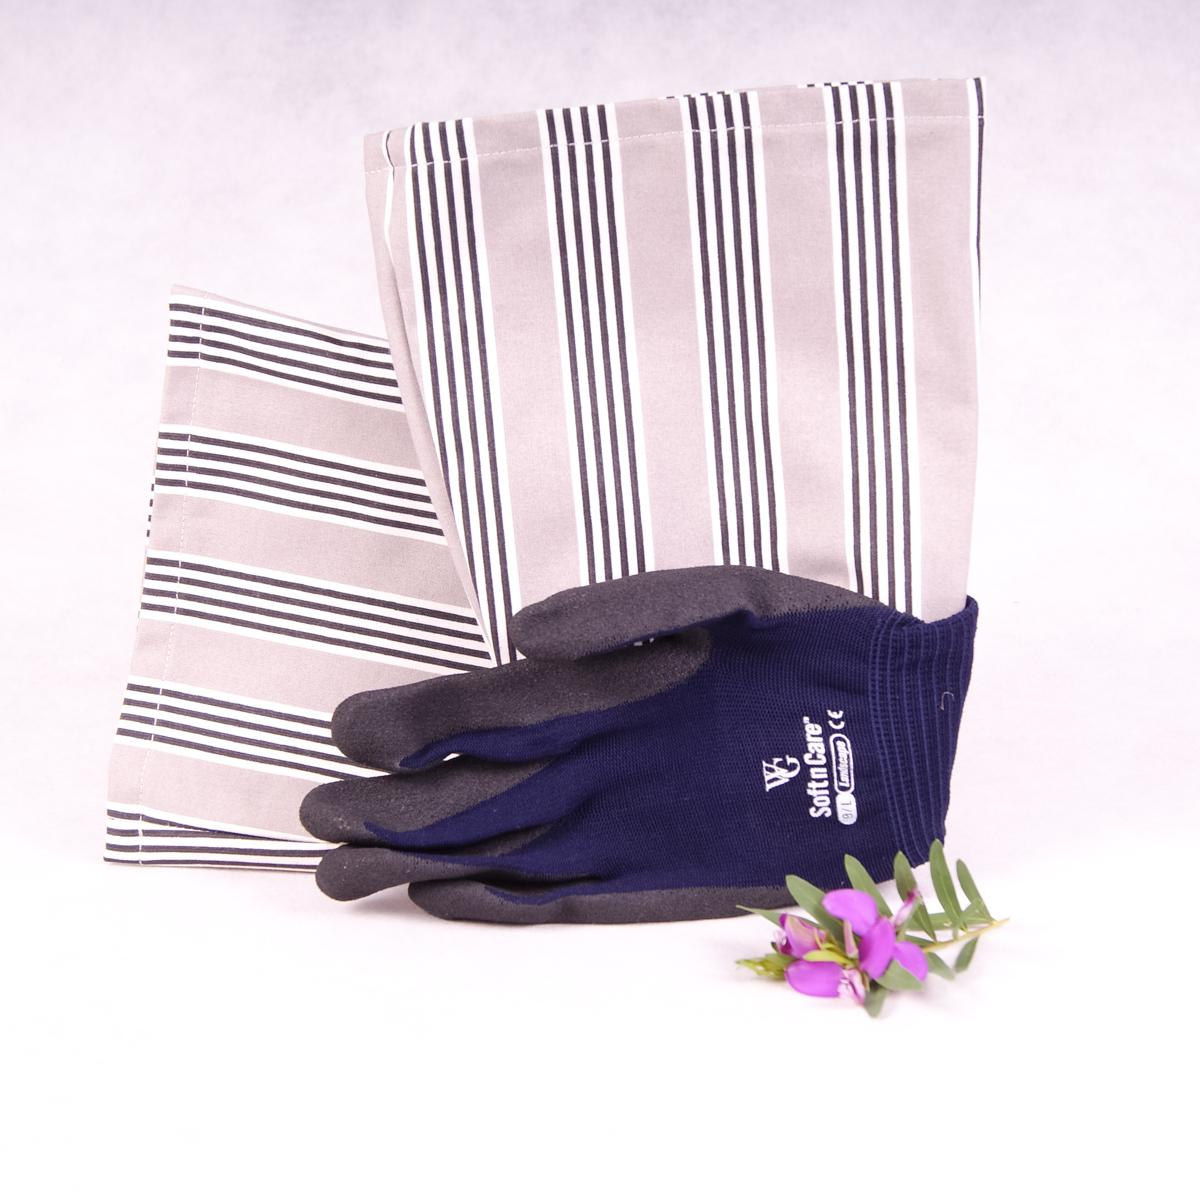 Long sleeve gardening gloves (Large) - Stripes - Gloves - Throw Some Seeds - Australian gardening gifts and eco products online!